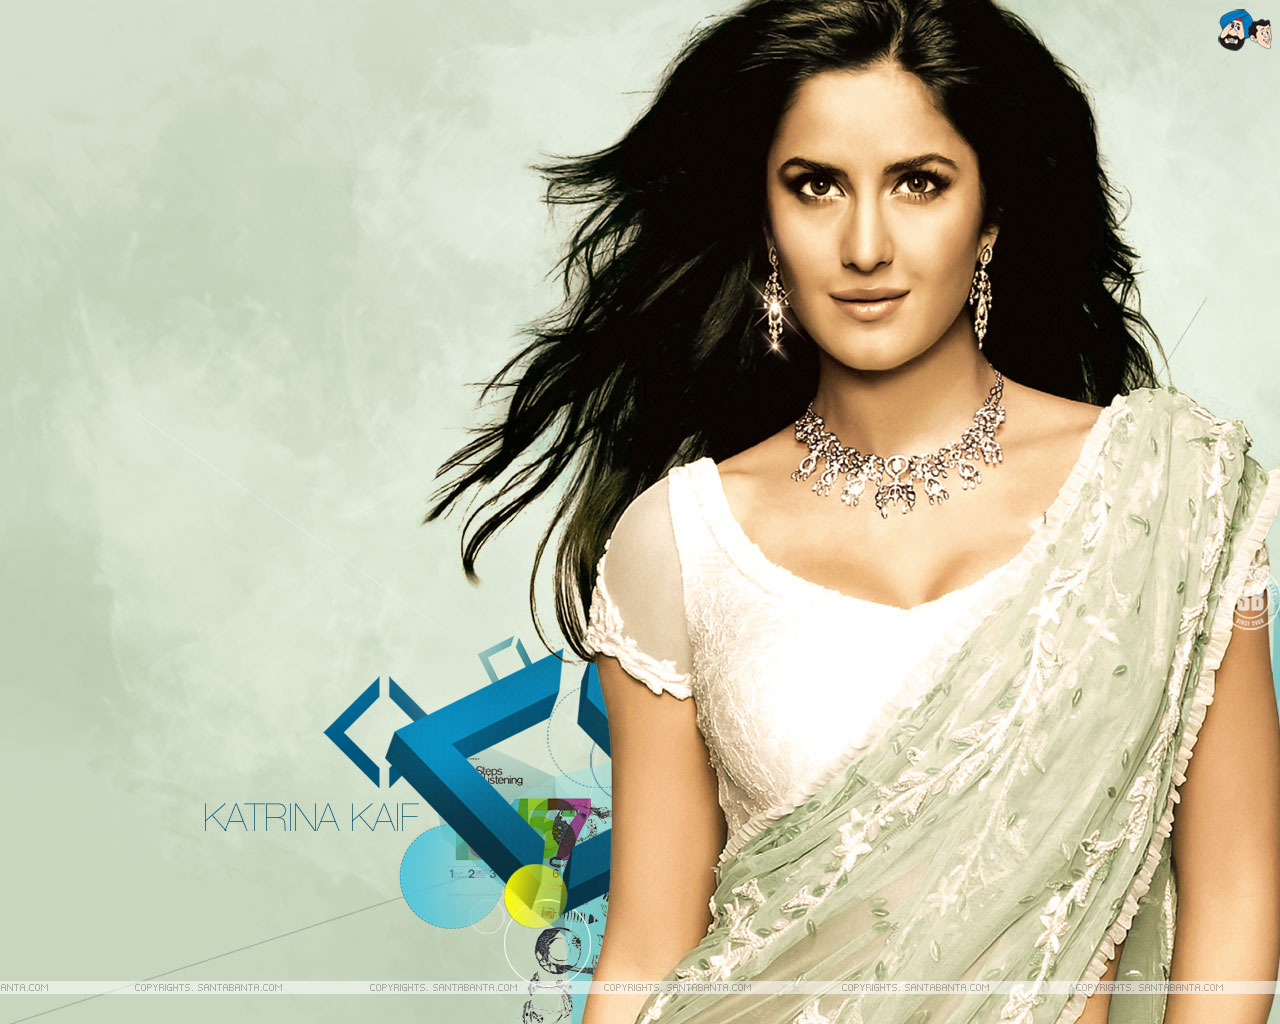 Katrina Kaif Wallpapers - Full Hd Wallpaper-7845